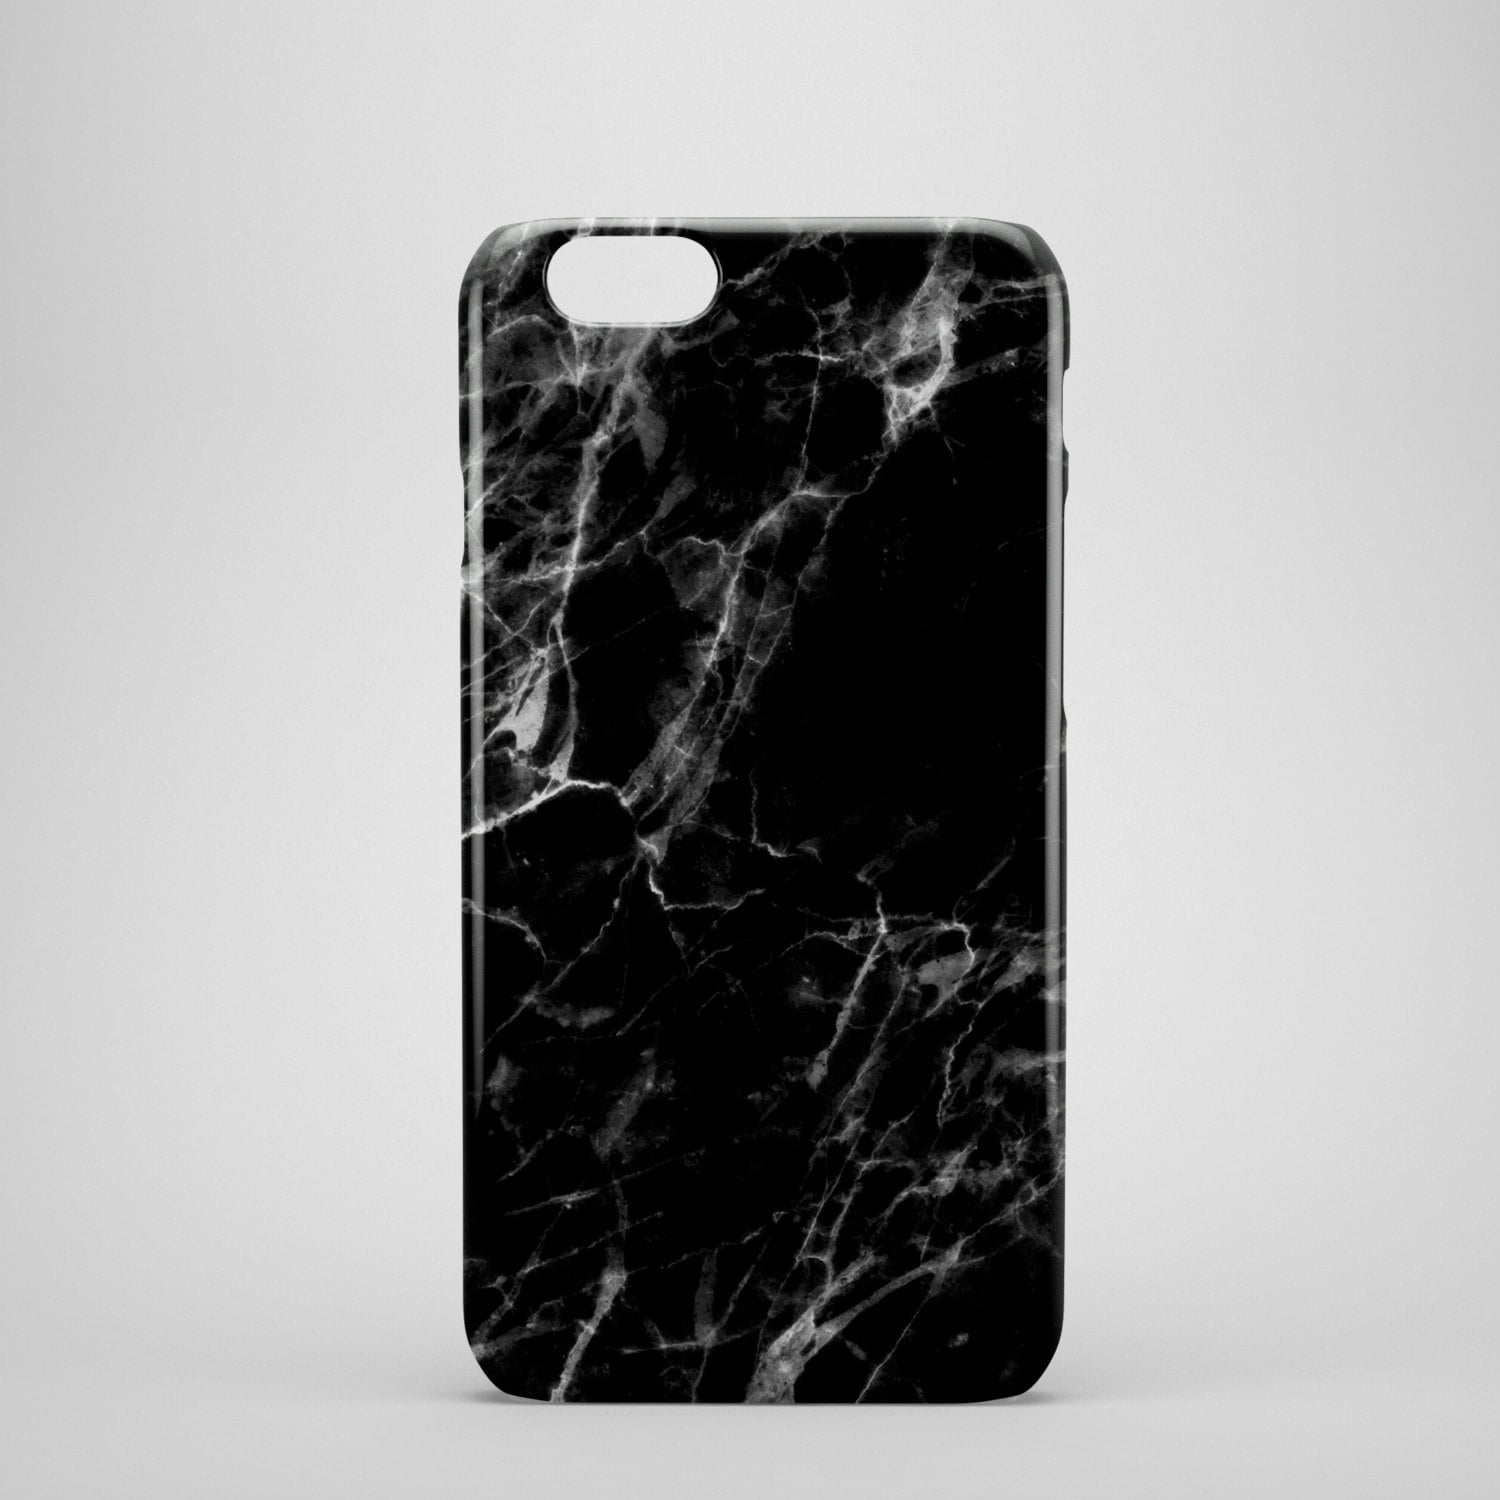 Black Marble iPhone 6 Case iPhone 6s case Iphone 6 Plus  0c686433af